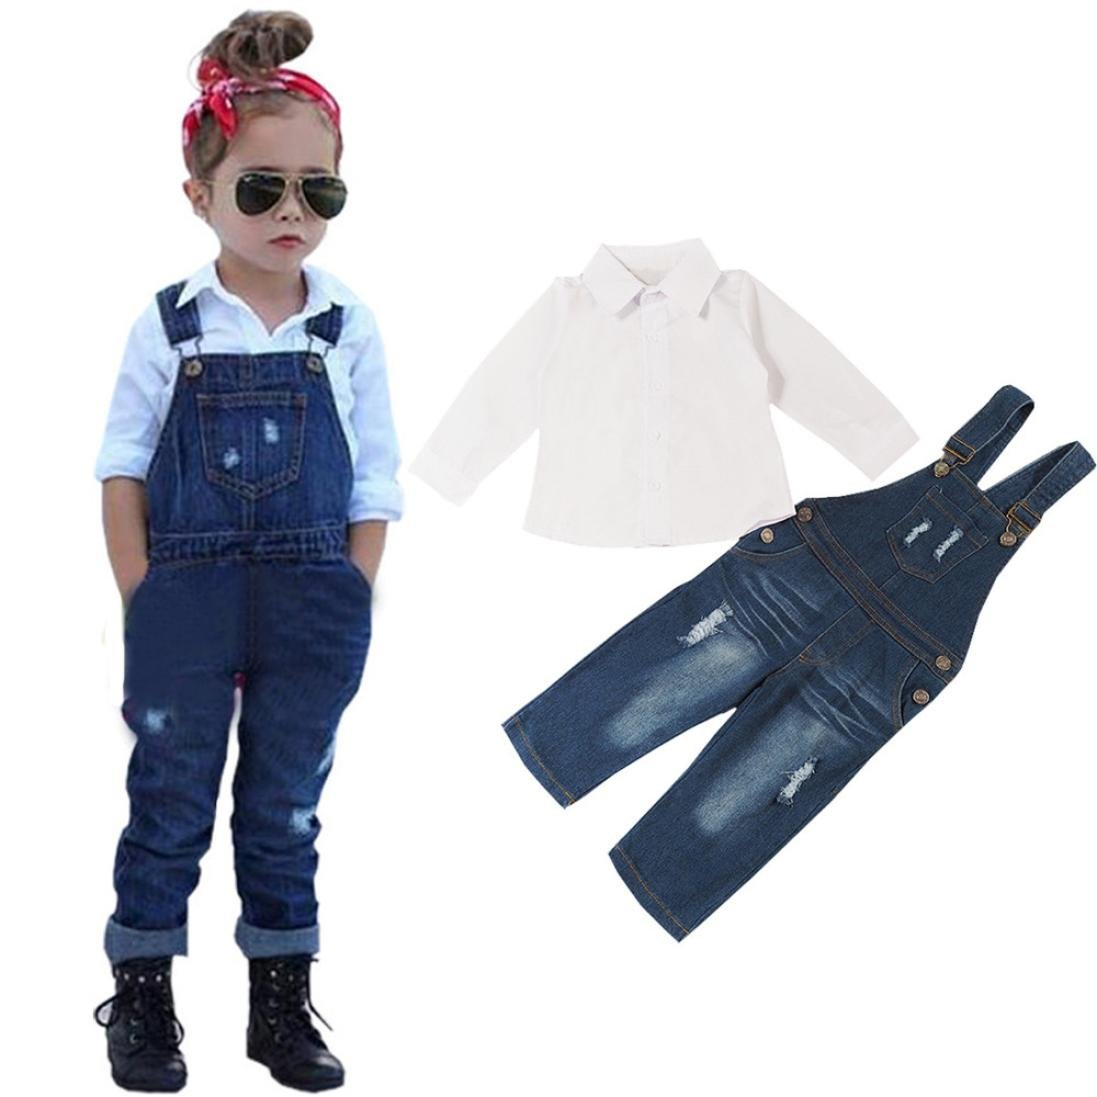 70654d81e97 Baby Clothes Girl Tops 2-8 Years Kids Baby Girls Outfits T-Shirt Tops  Blouse+ Denim Dress Pants Clothes Set Navy  Amazon.co.uk  Clothing